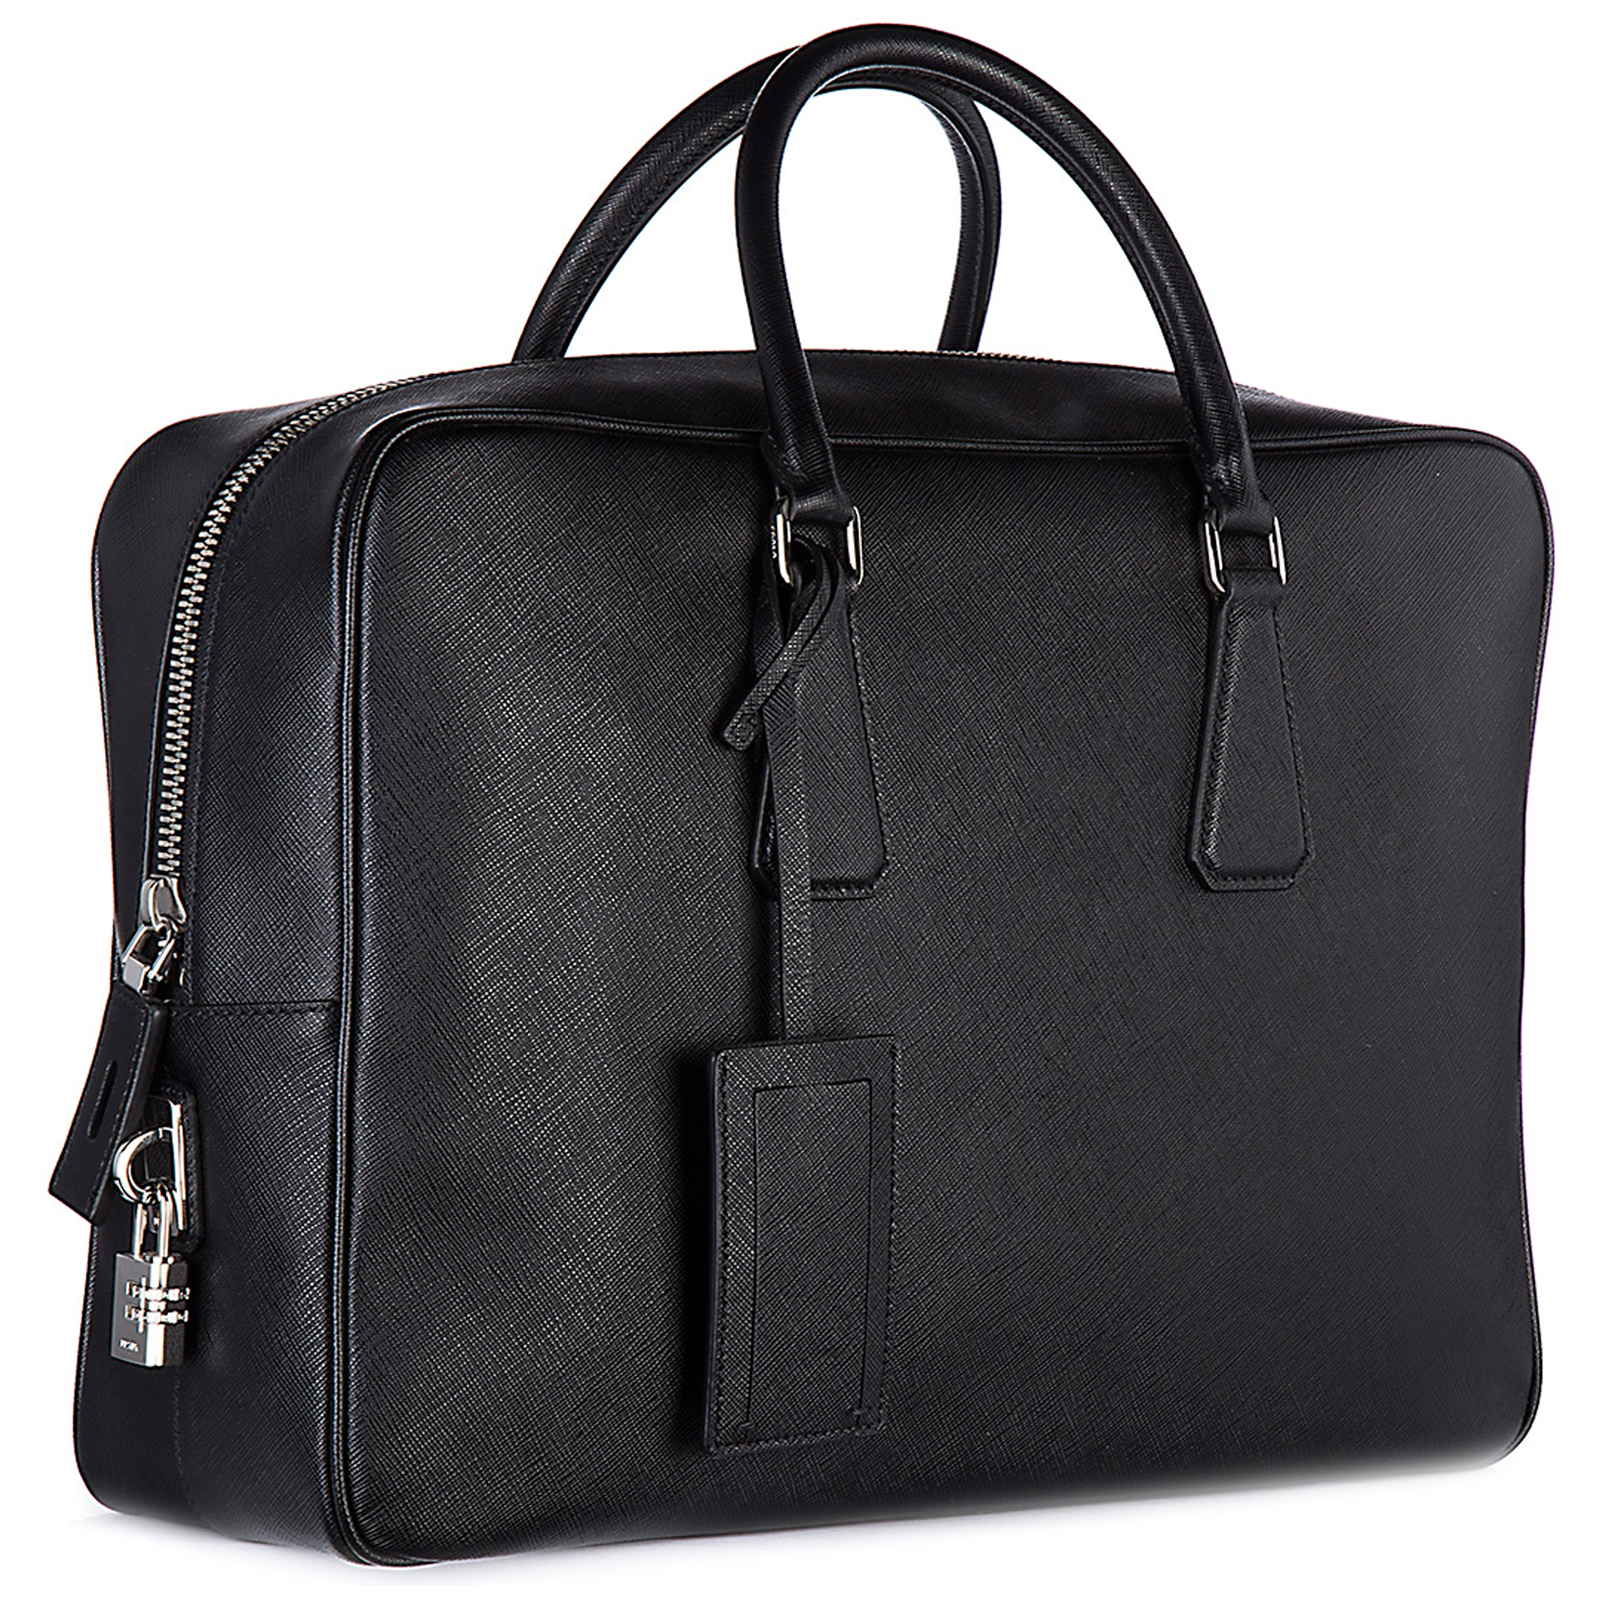 Briefcase attaché case laptop pc bag leather saffiano travel